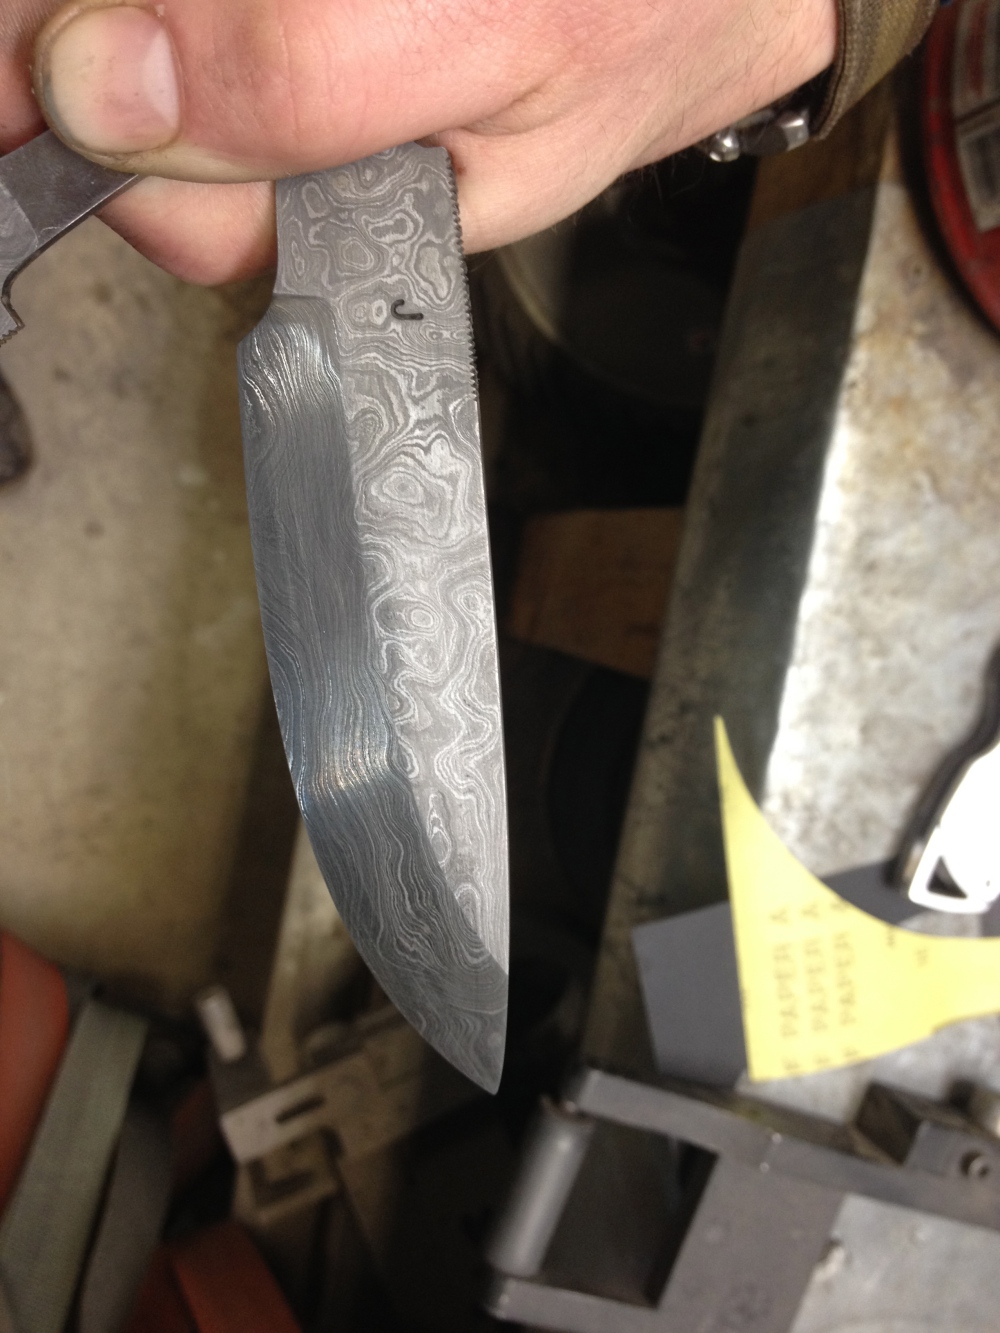 My blade Acid etched as well